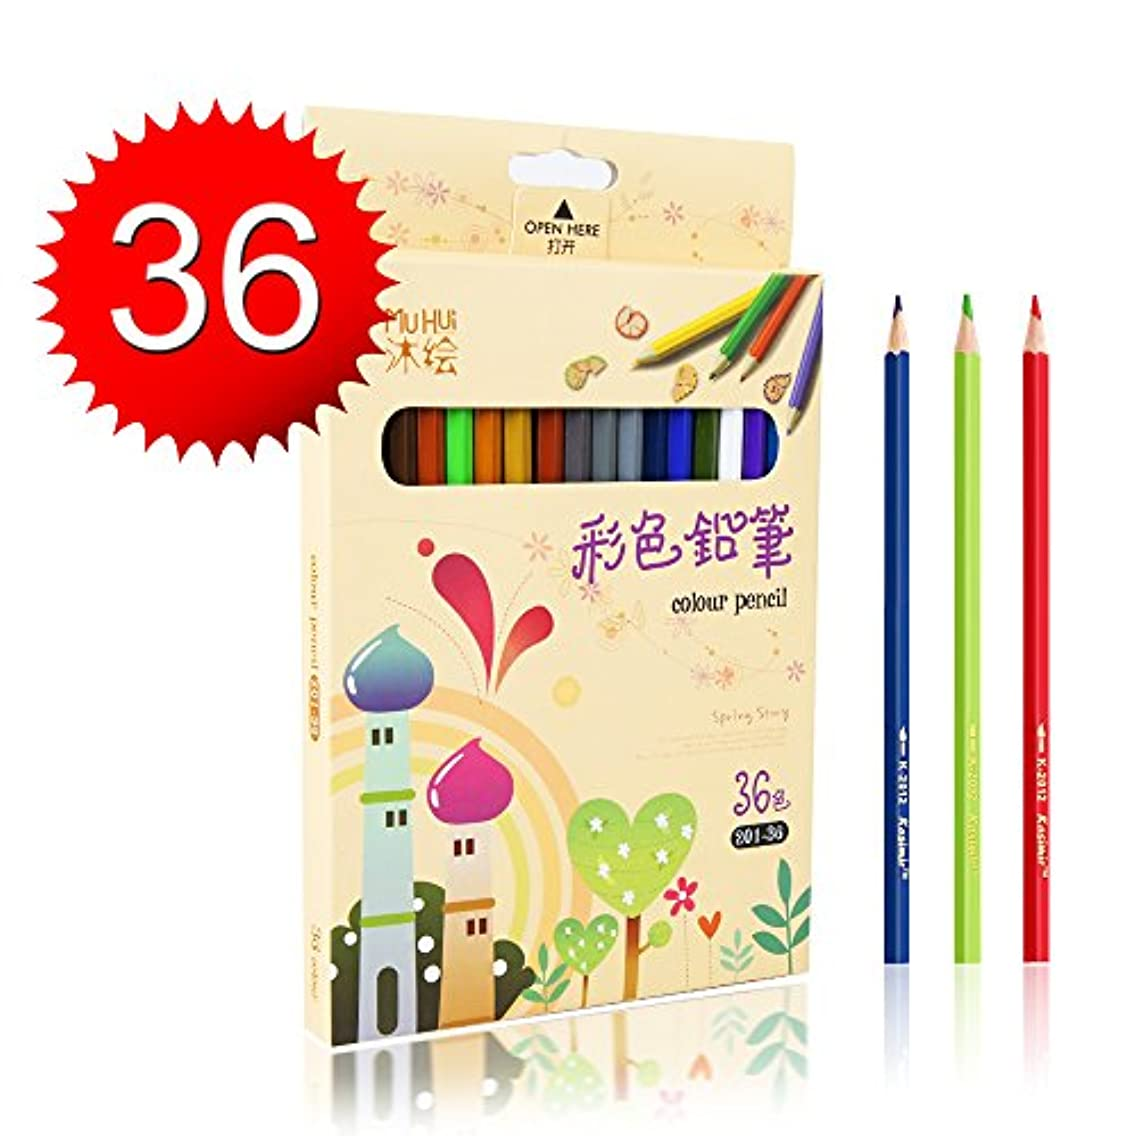 Kasimir Colored Pencils with Vibrant Colors and Soft Core for Adults Artists Kids Anime Sketch Book Adult Colouring Book(Pack of 36)